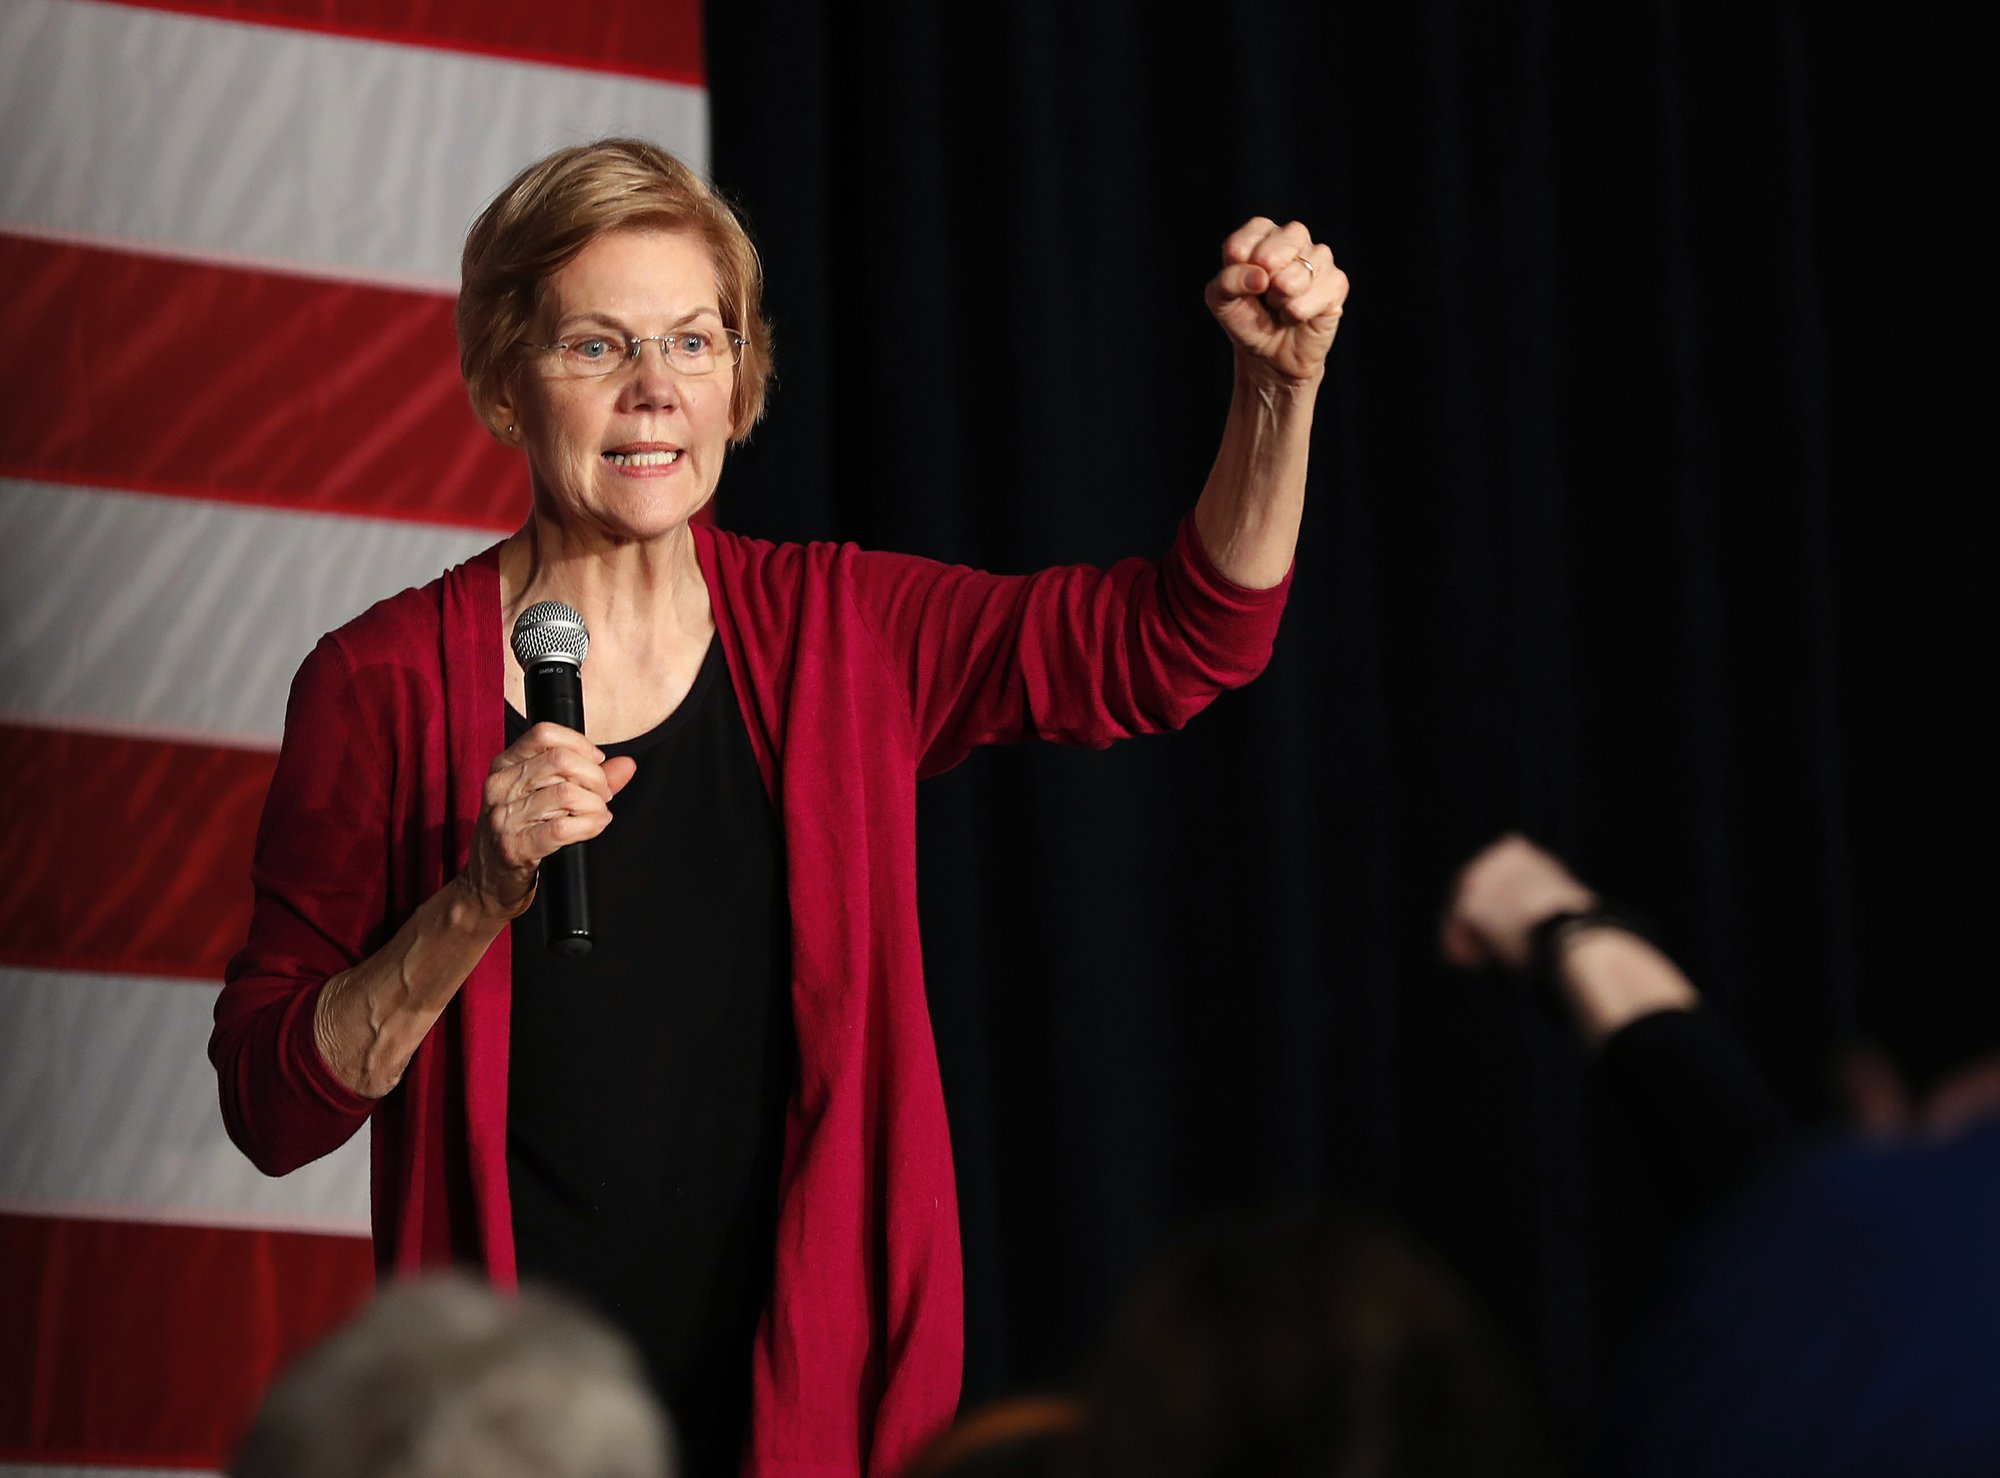 Democratic contenders hoping to run on soaking the rich